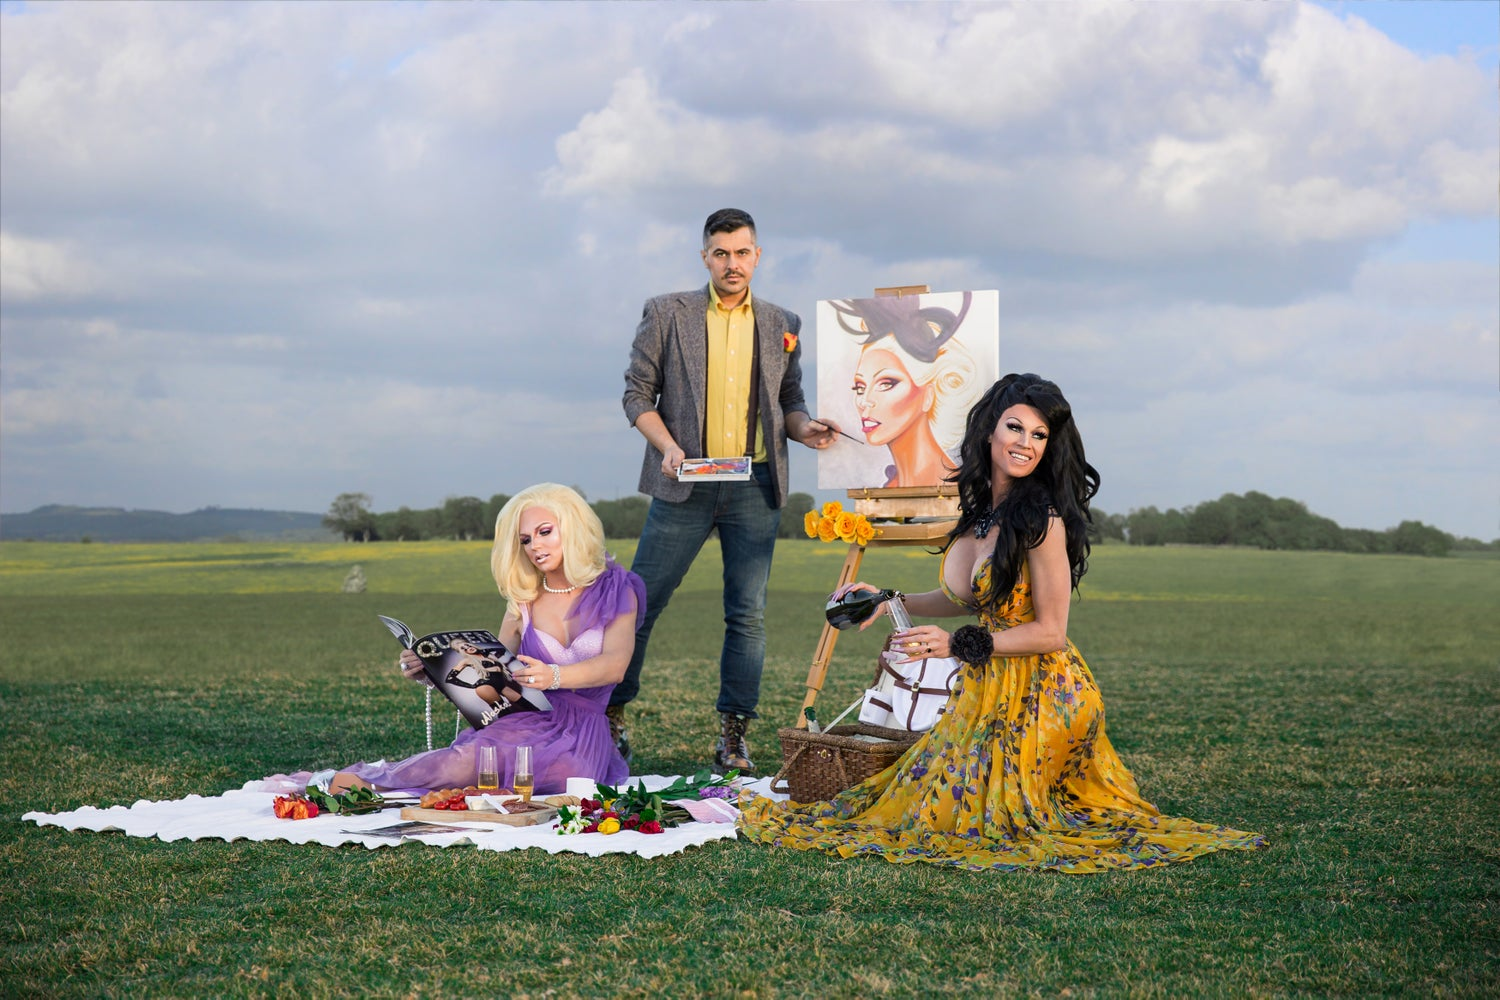 Image of Throuple X Arturo Garza: Family Picnic